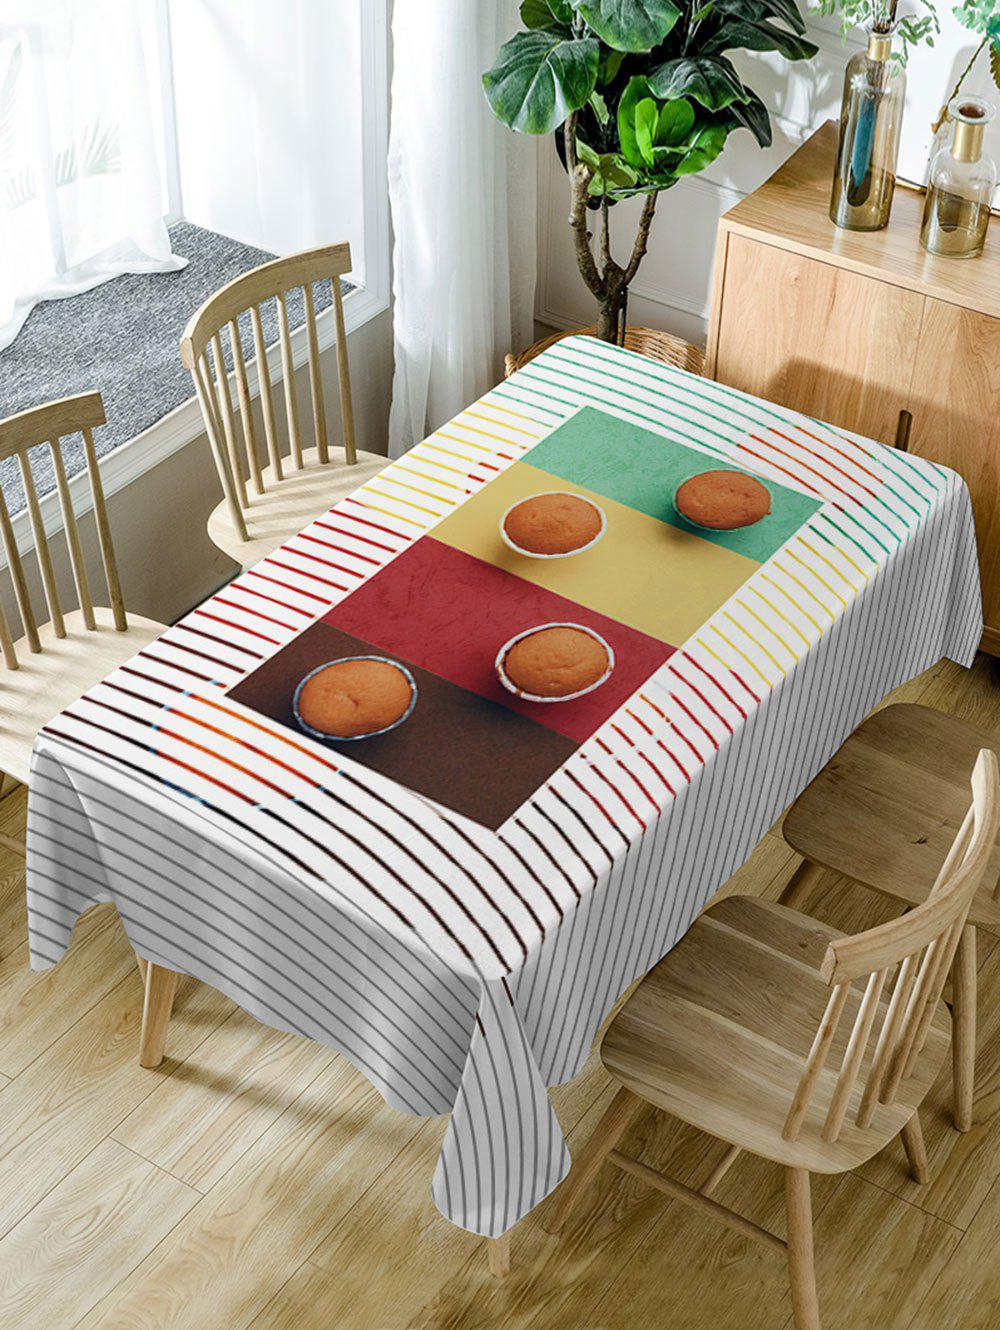 Hot Cake Stripe Print Waterproof Dining Table Cloth